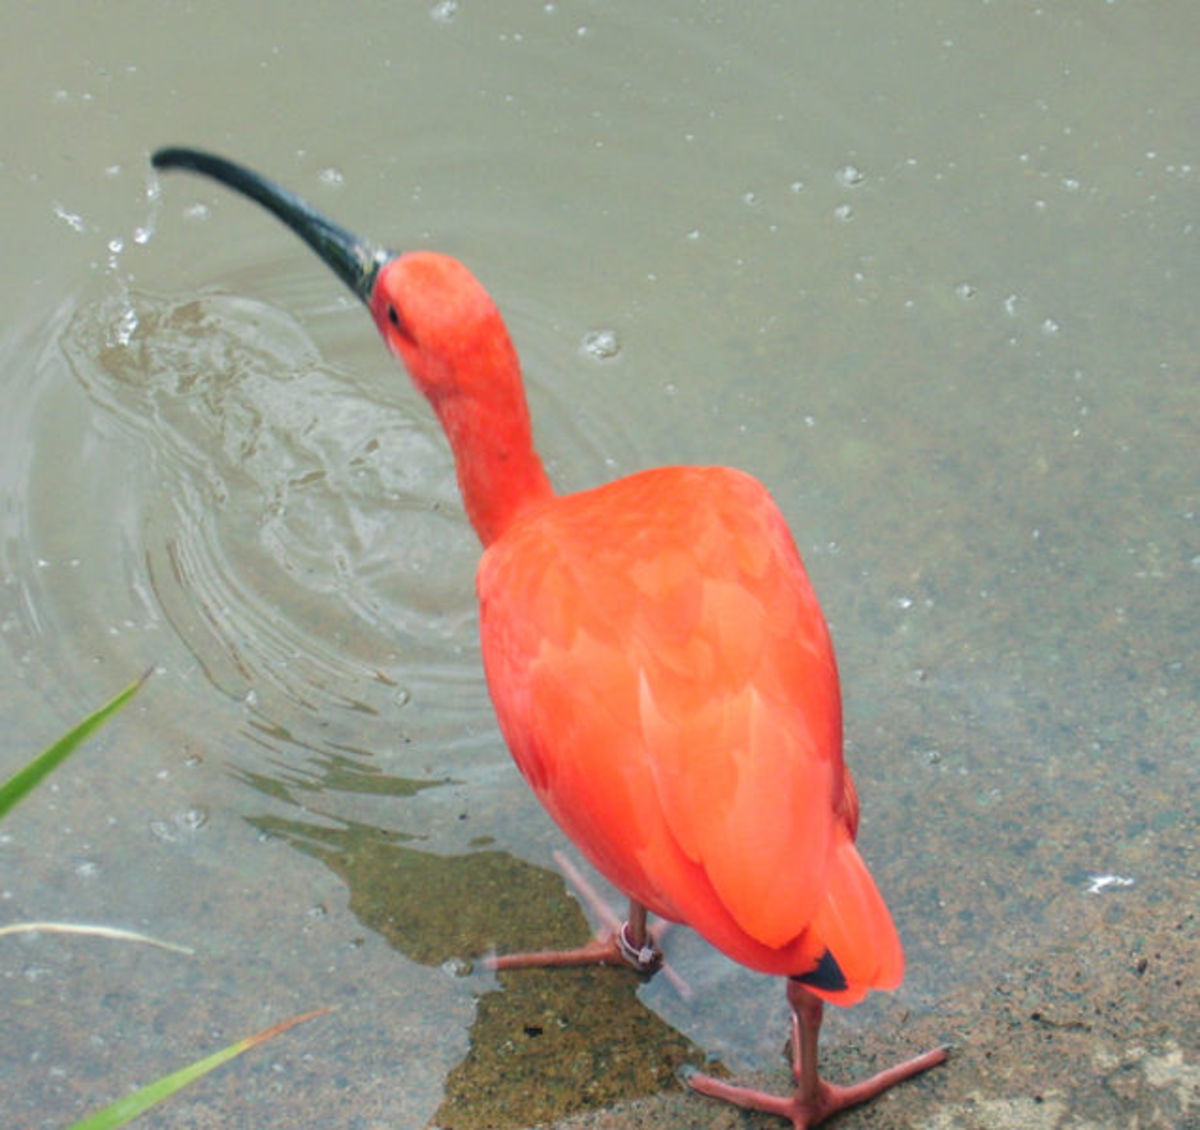 The Scarlet Ibis, also the name of a short story by James Hurst